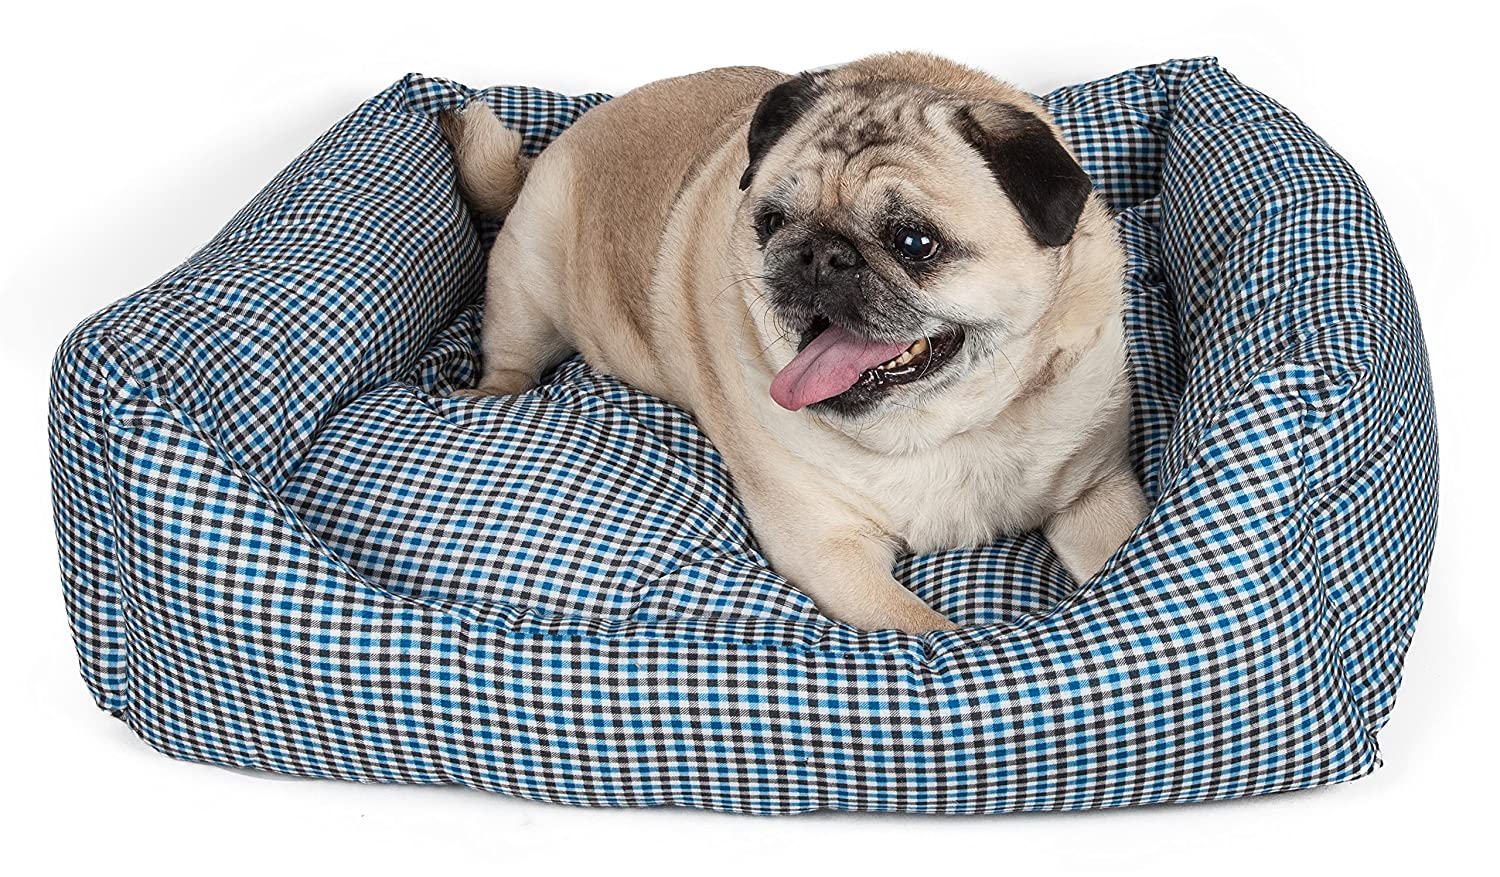 bluee Plaid XSPET LIFE 'WickAway' WickProof NanoSilver and AntiBacterial Water Resistant Rectangular Pet Dog Bed, Small, Dark Brown